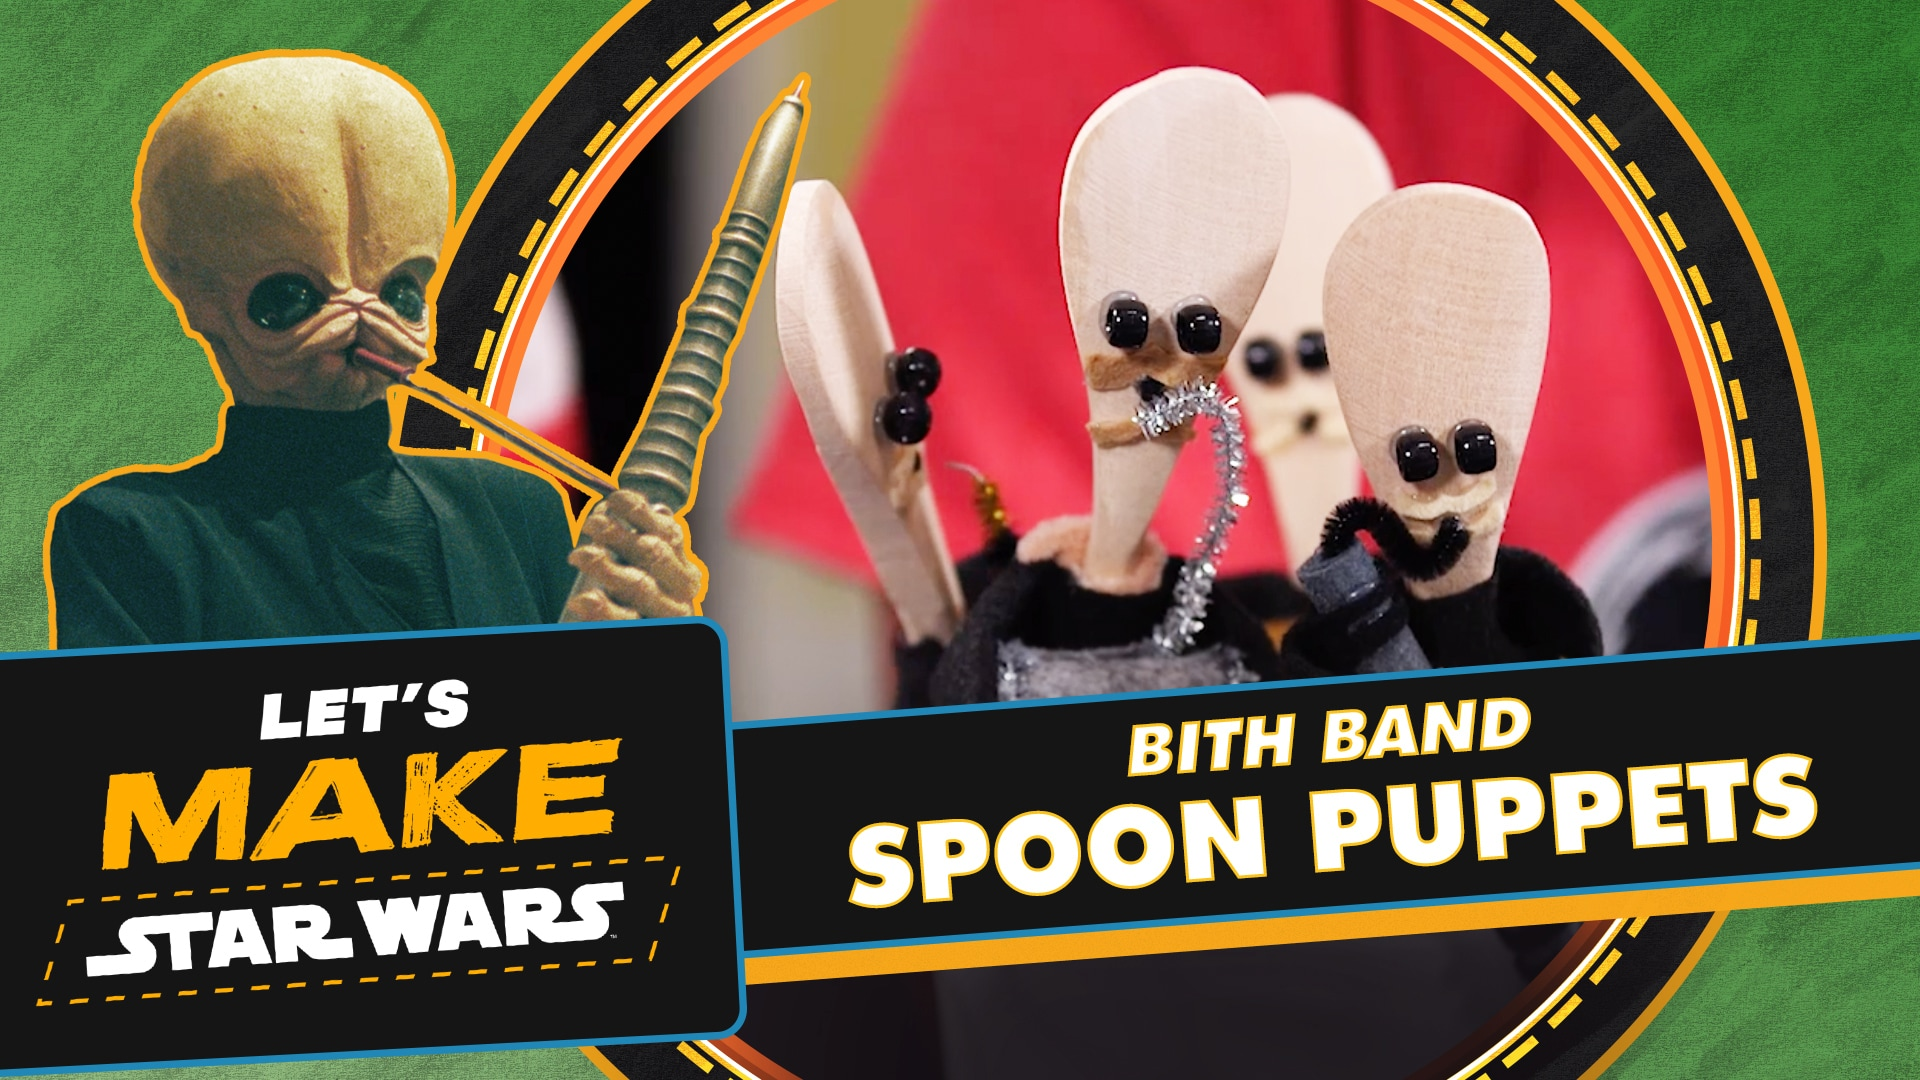 How to Make Cantina Band Spoon Puppets | Let's Make Star Wars